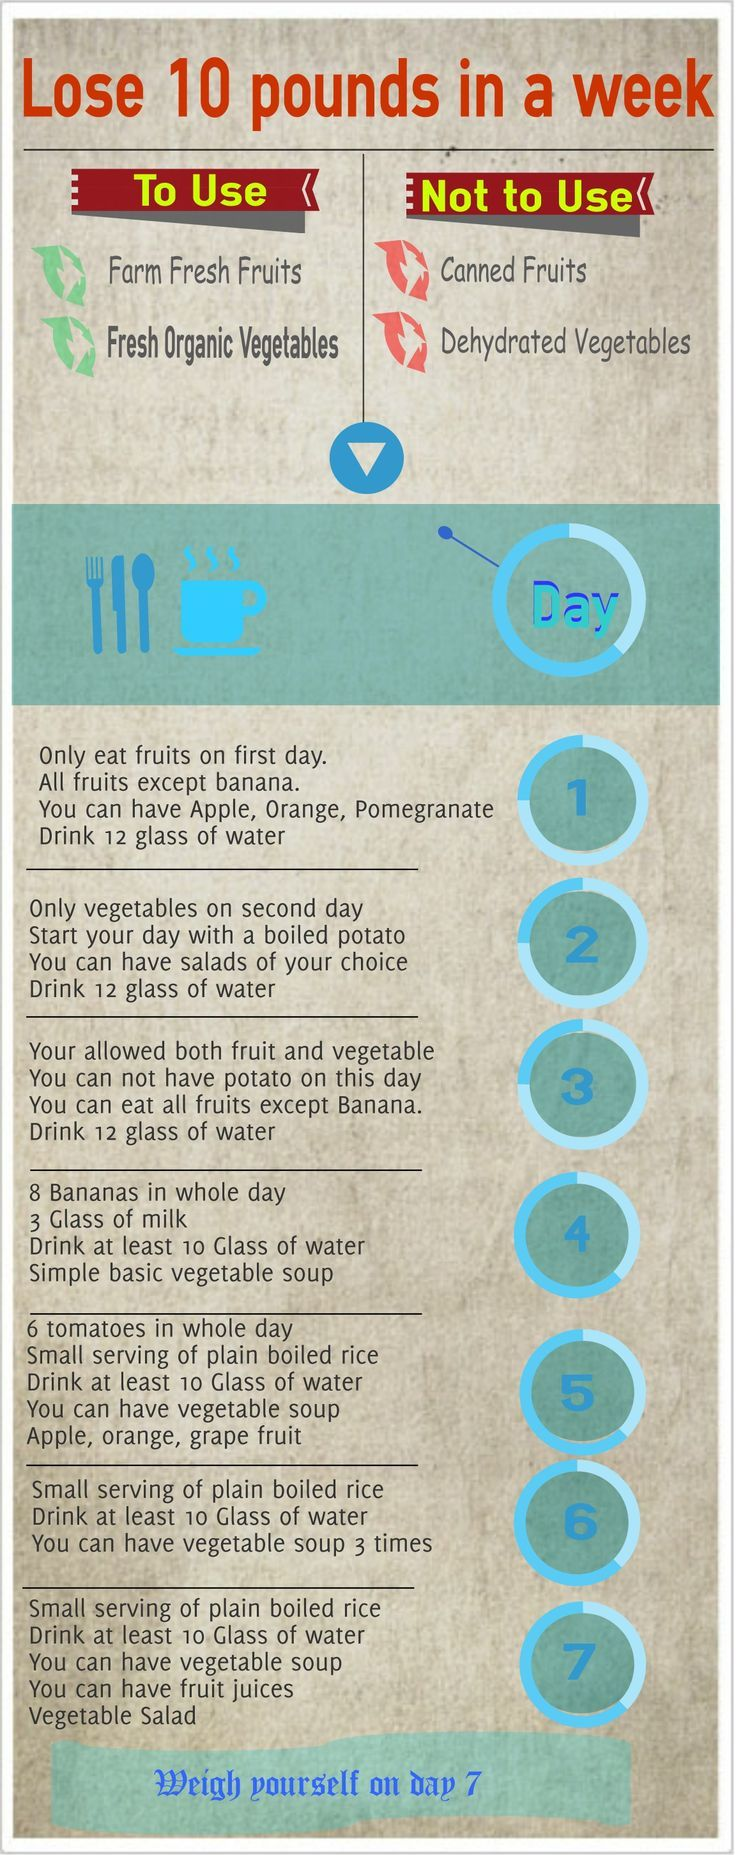 Lose 10 pounds in a week 7 day diet plan losing 10